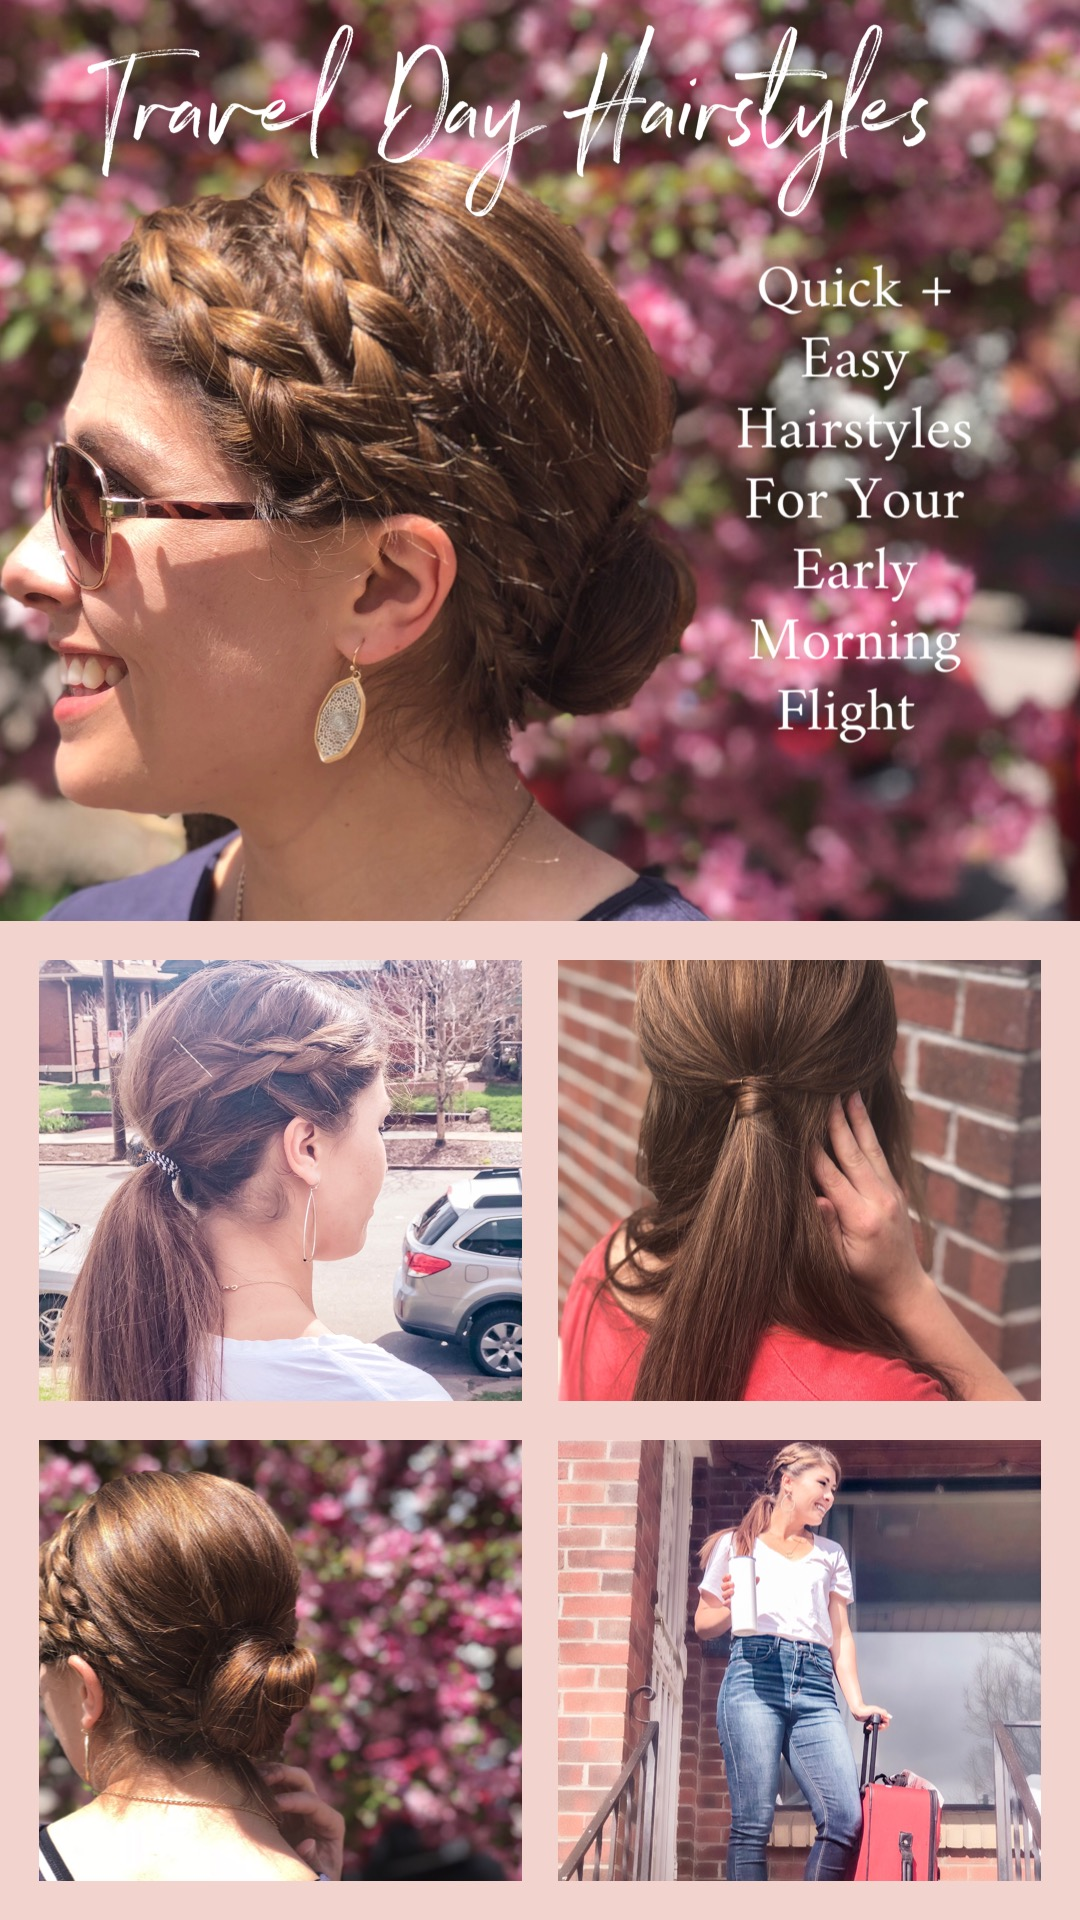 TRAVEL DAY HAIRSTYLES